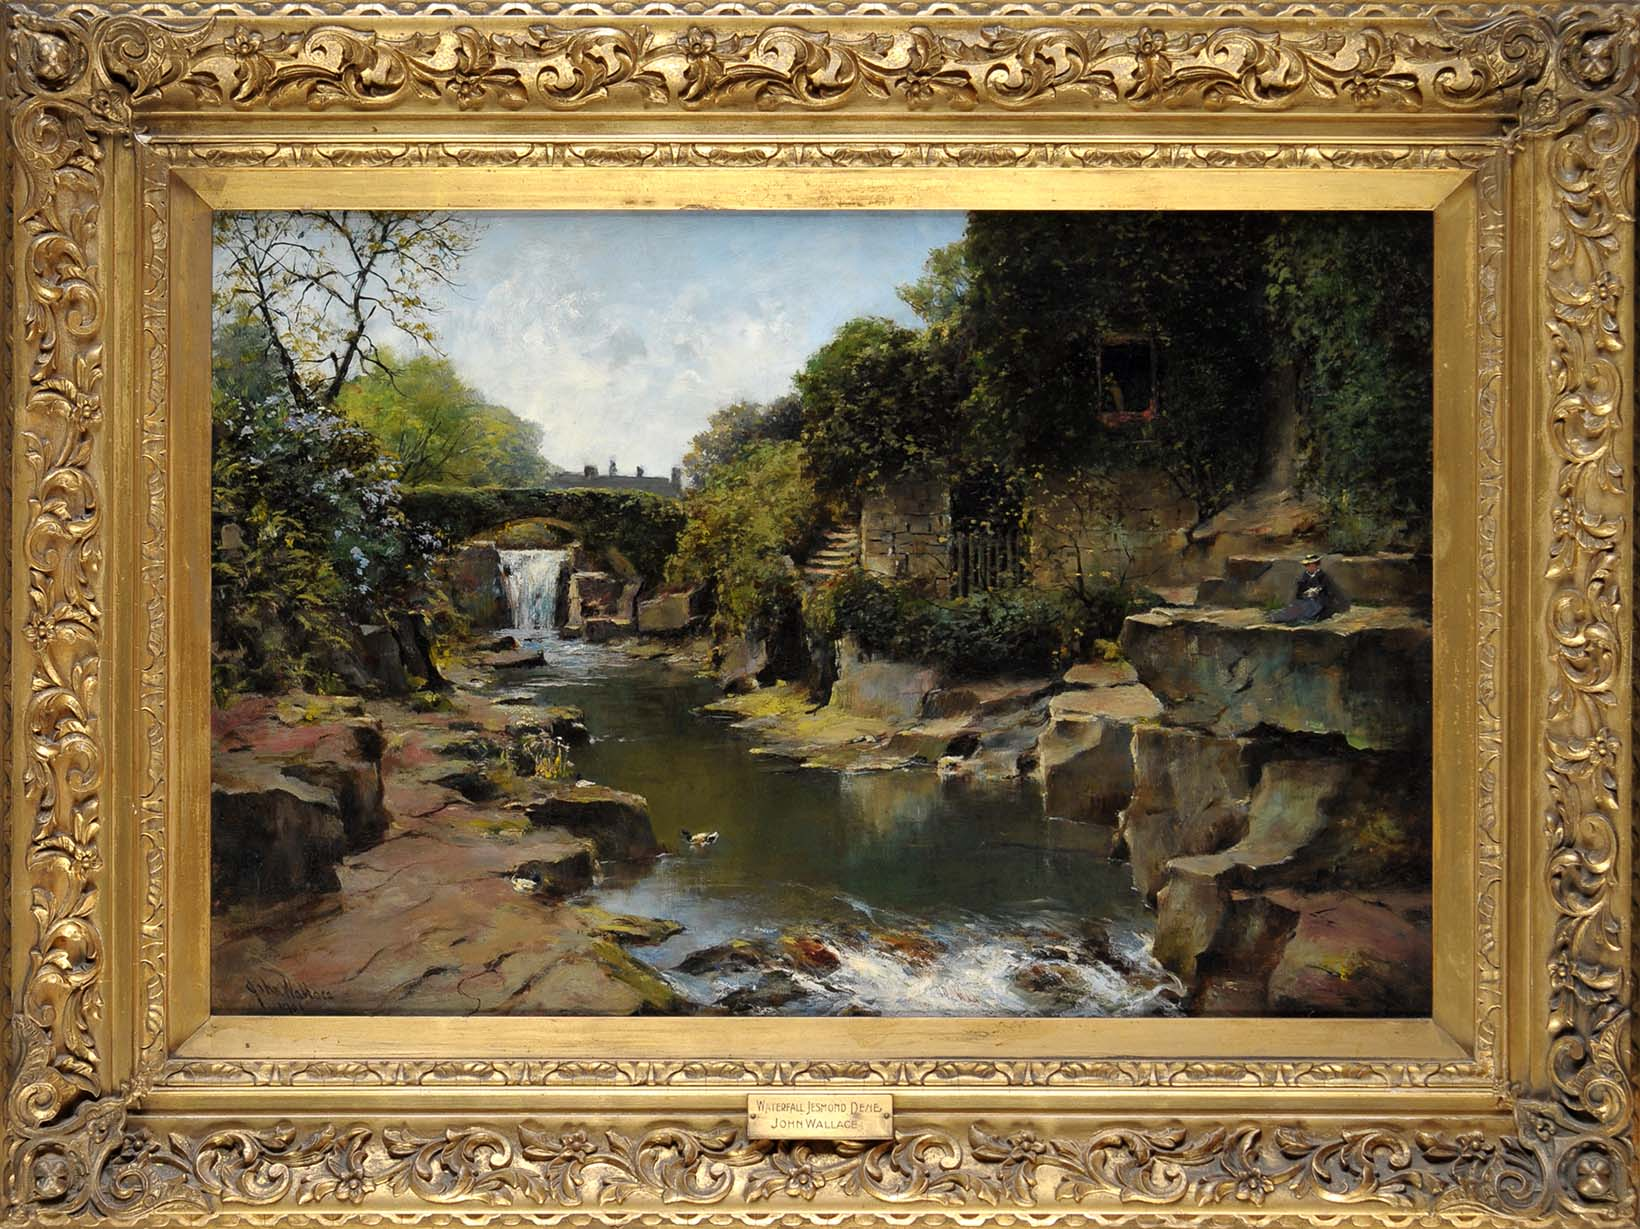 Lot 164 - John Wallace (1841-1905) WATERFALL JESMOND DENE signed and dated 1901 oil on canvas 49.5 x 75cms; 19